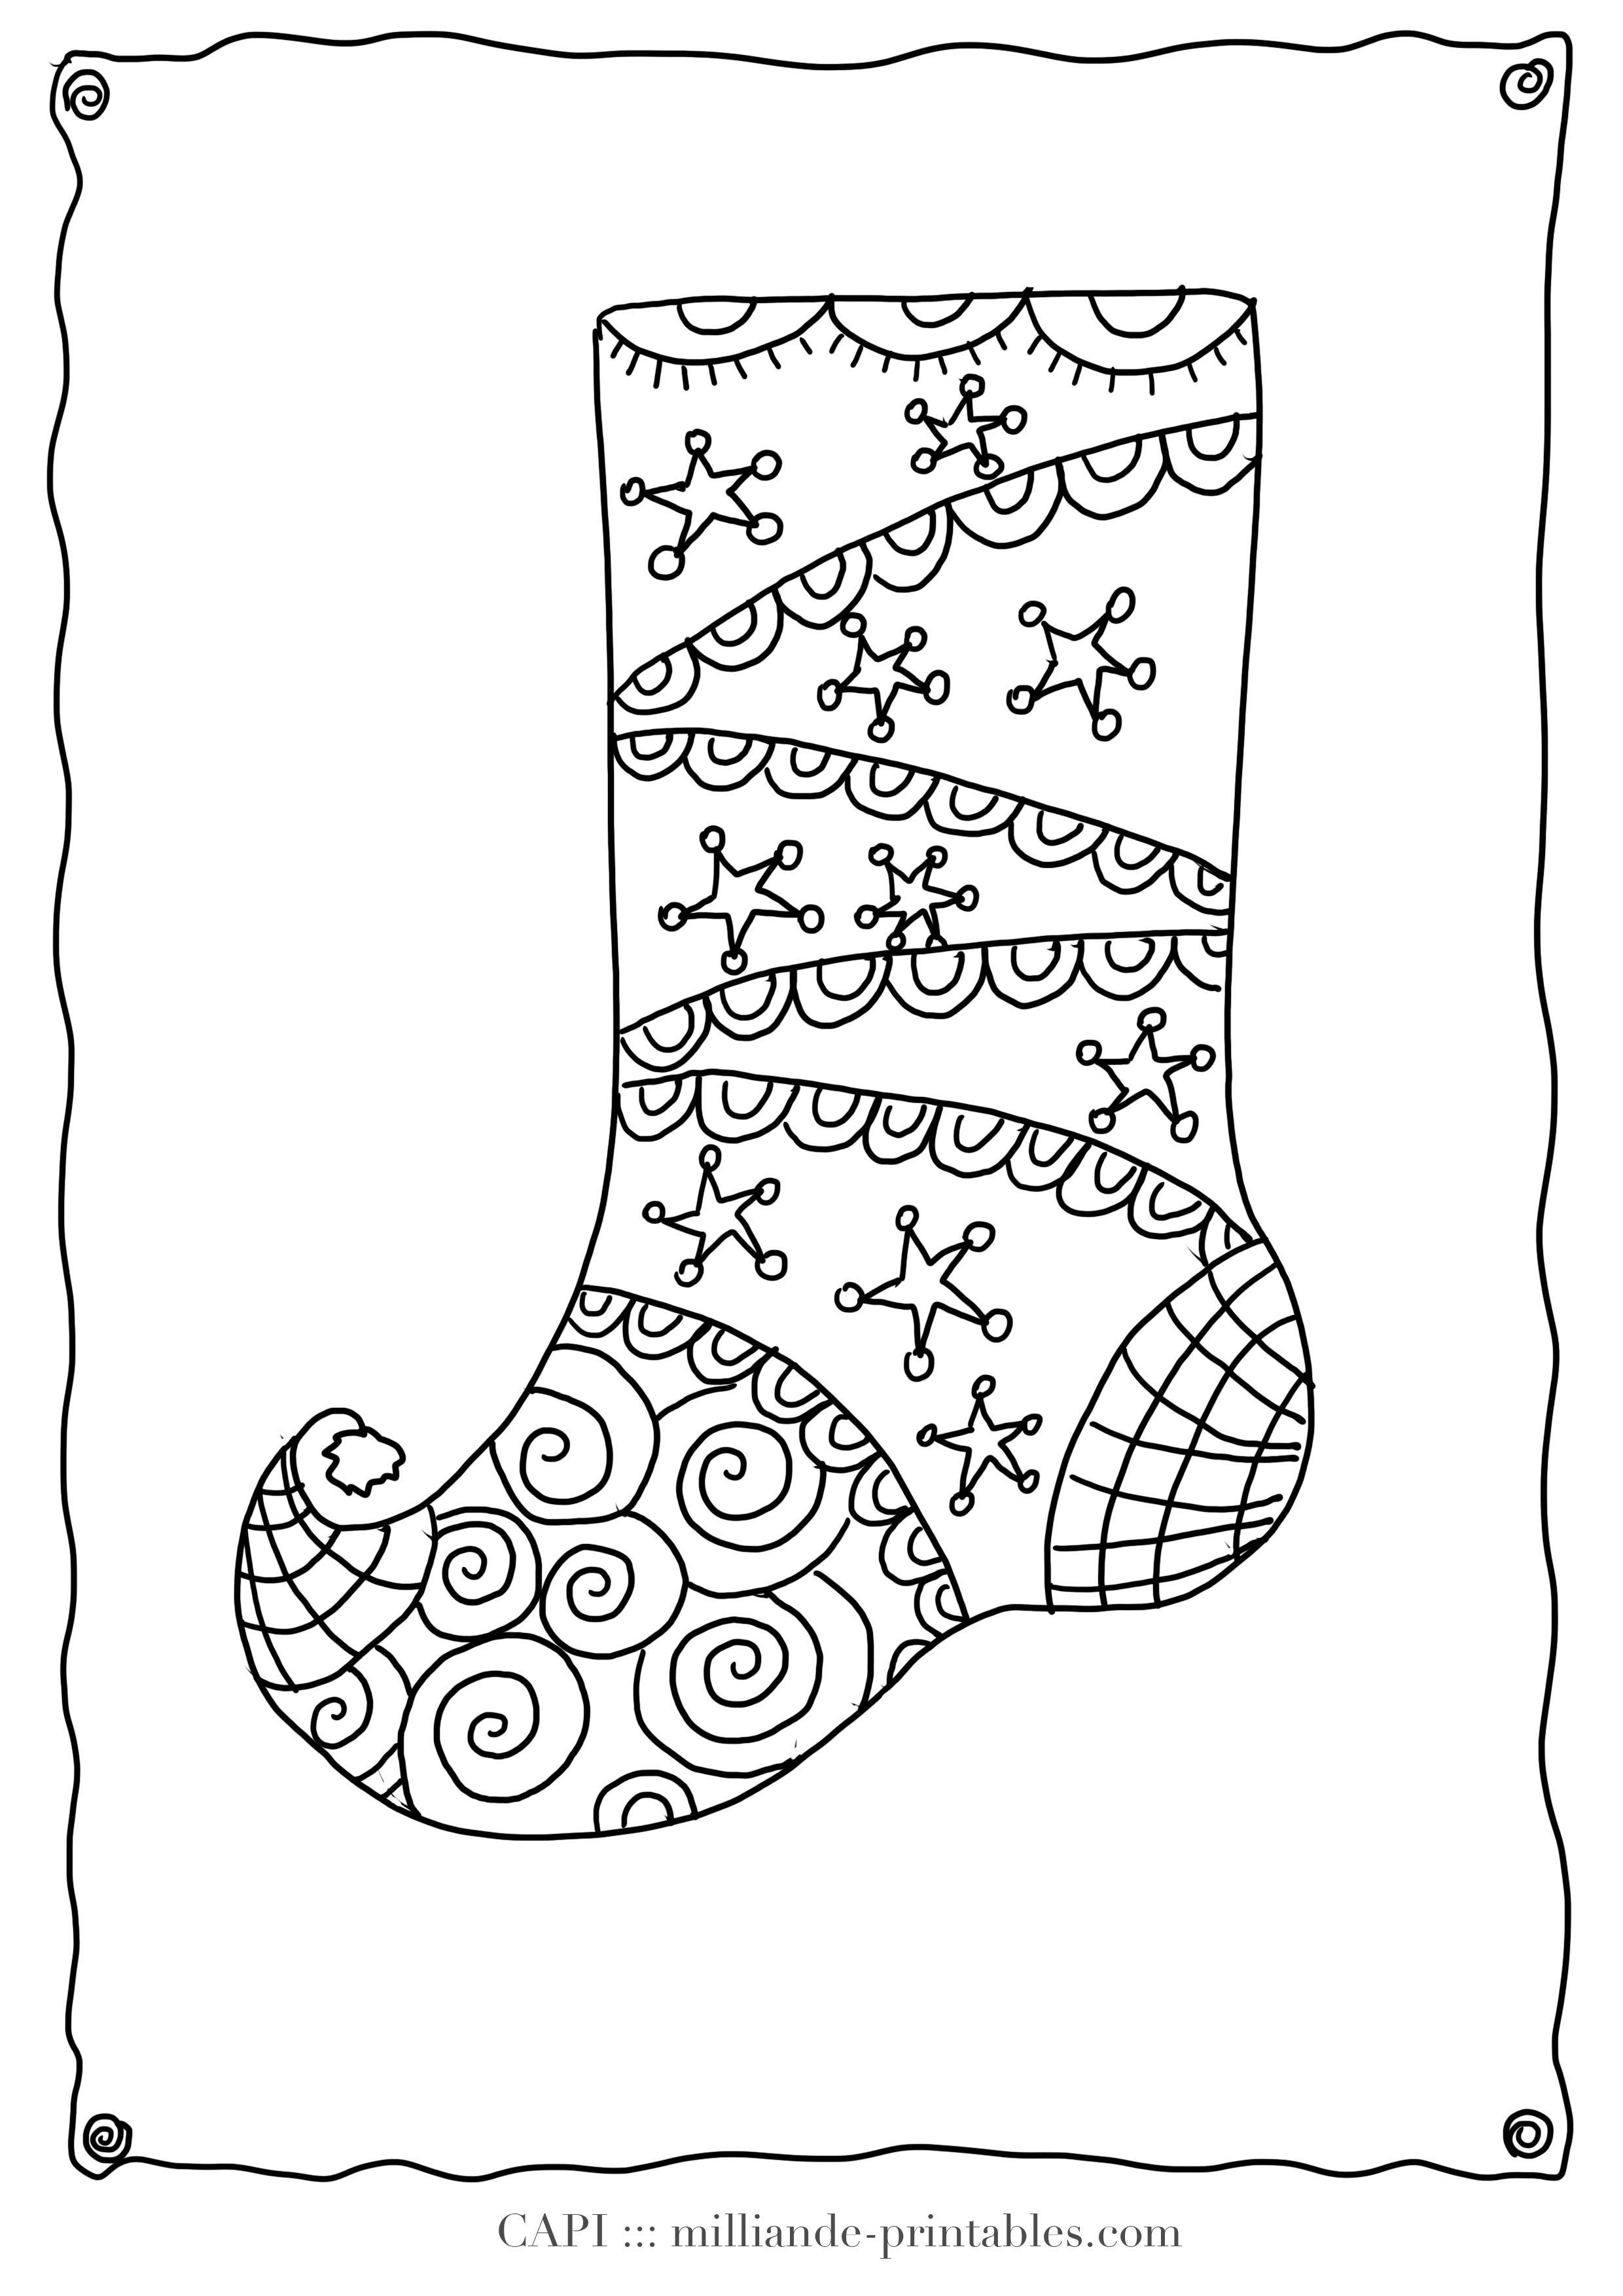 Christmas Coloring Page Stocking Milliande S Original Free Christmas Coloring Sheets